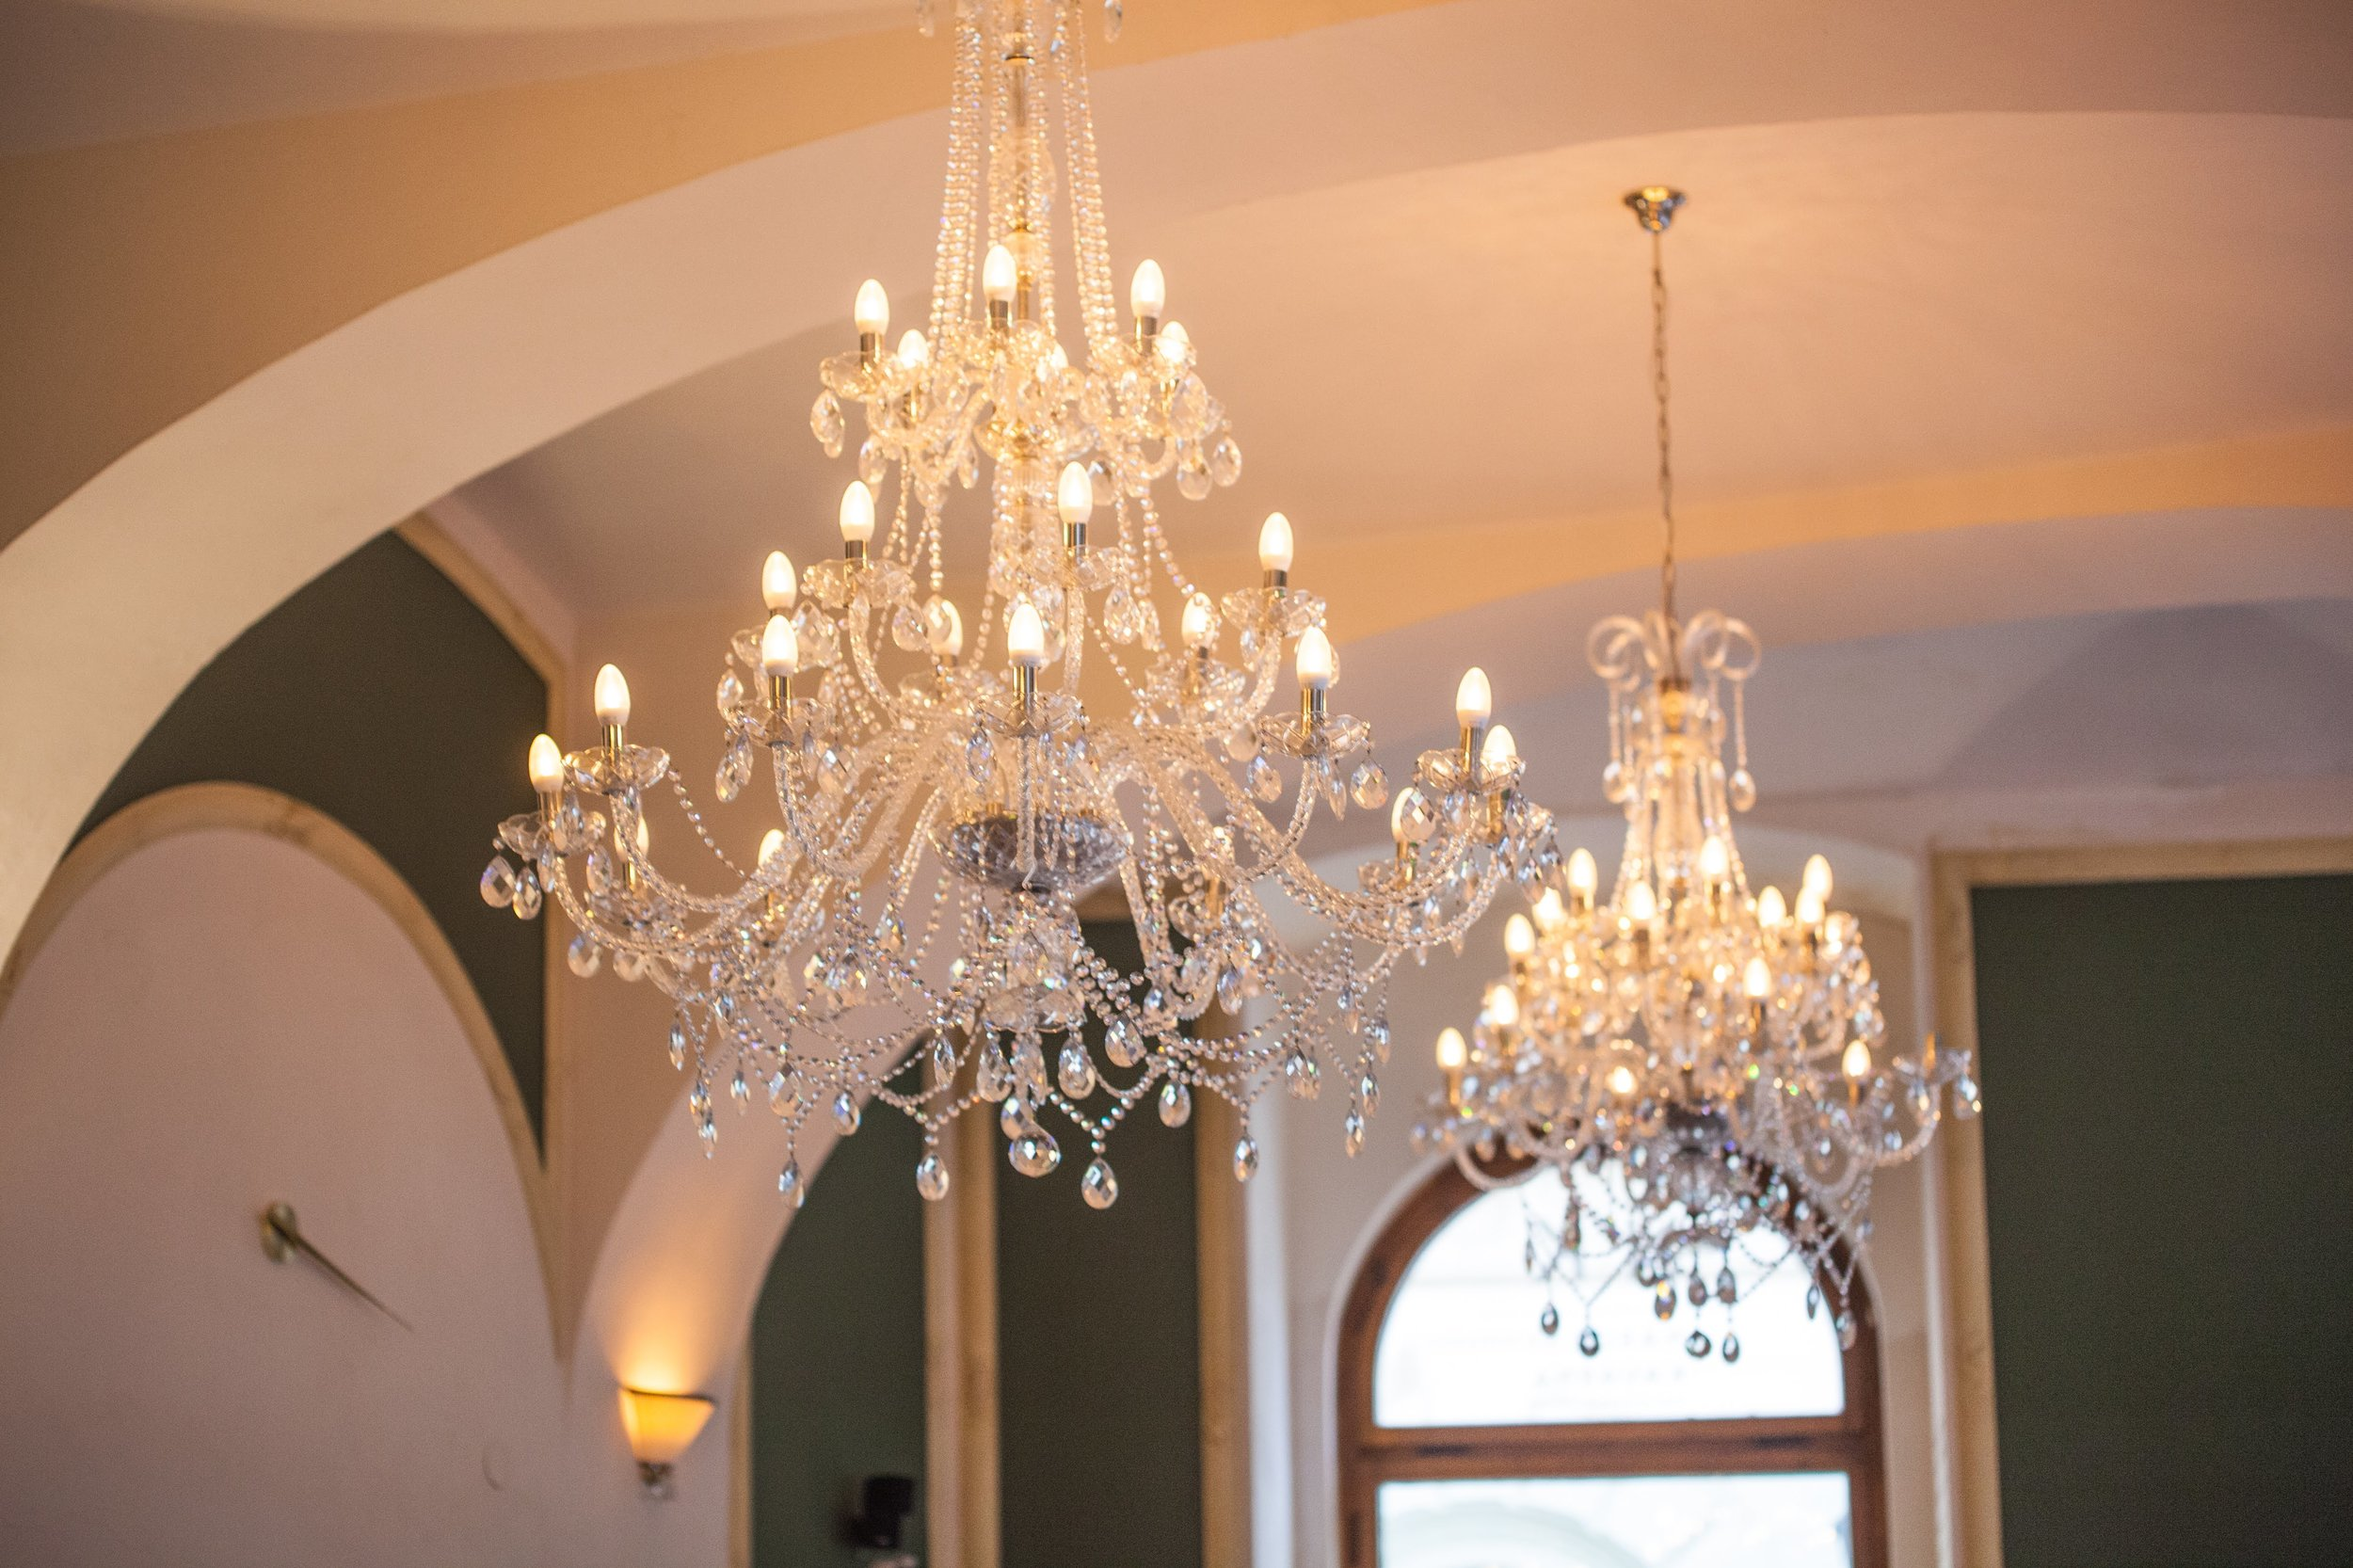 National-Cafe-Prague-Wranovsky-Crystal-Chandeliers-1.jpg